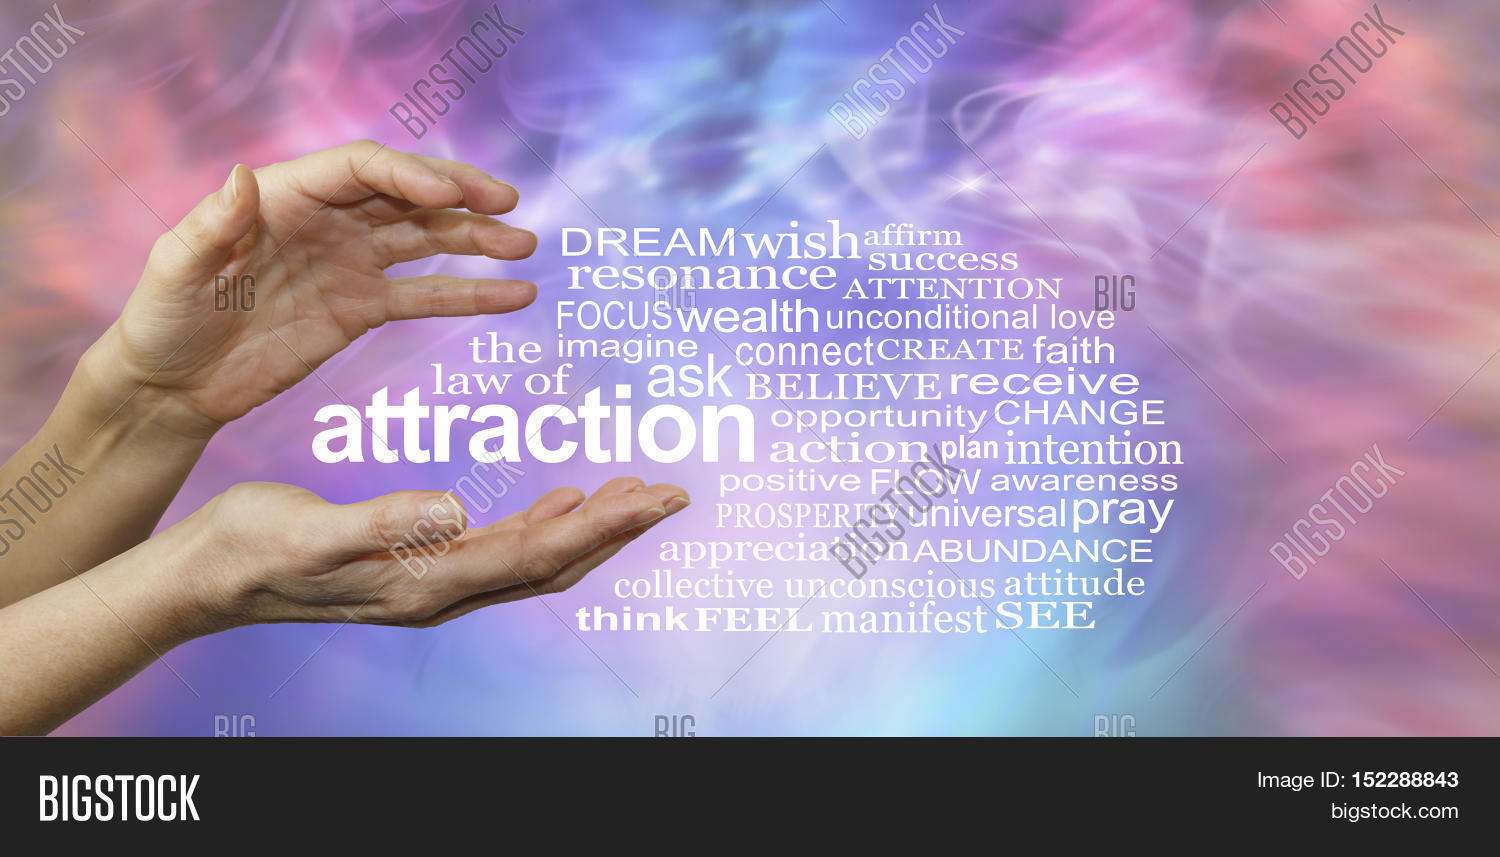 Law Attraction Word Image Amp Photo Free Trial